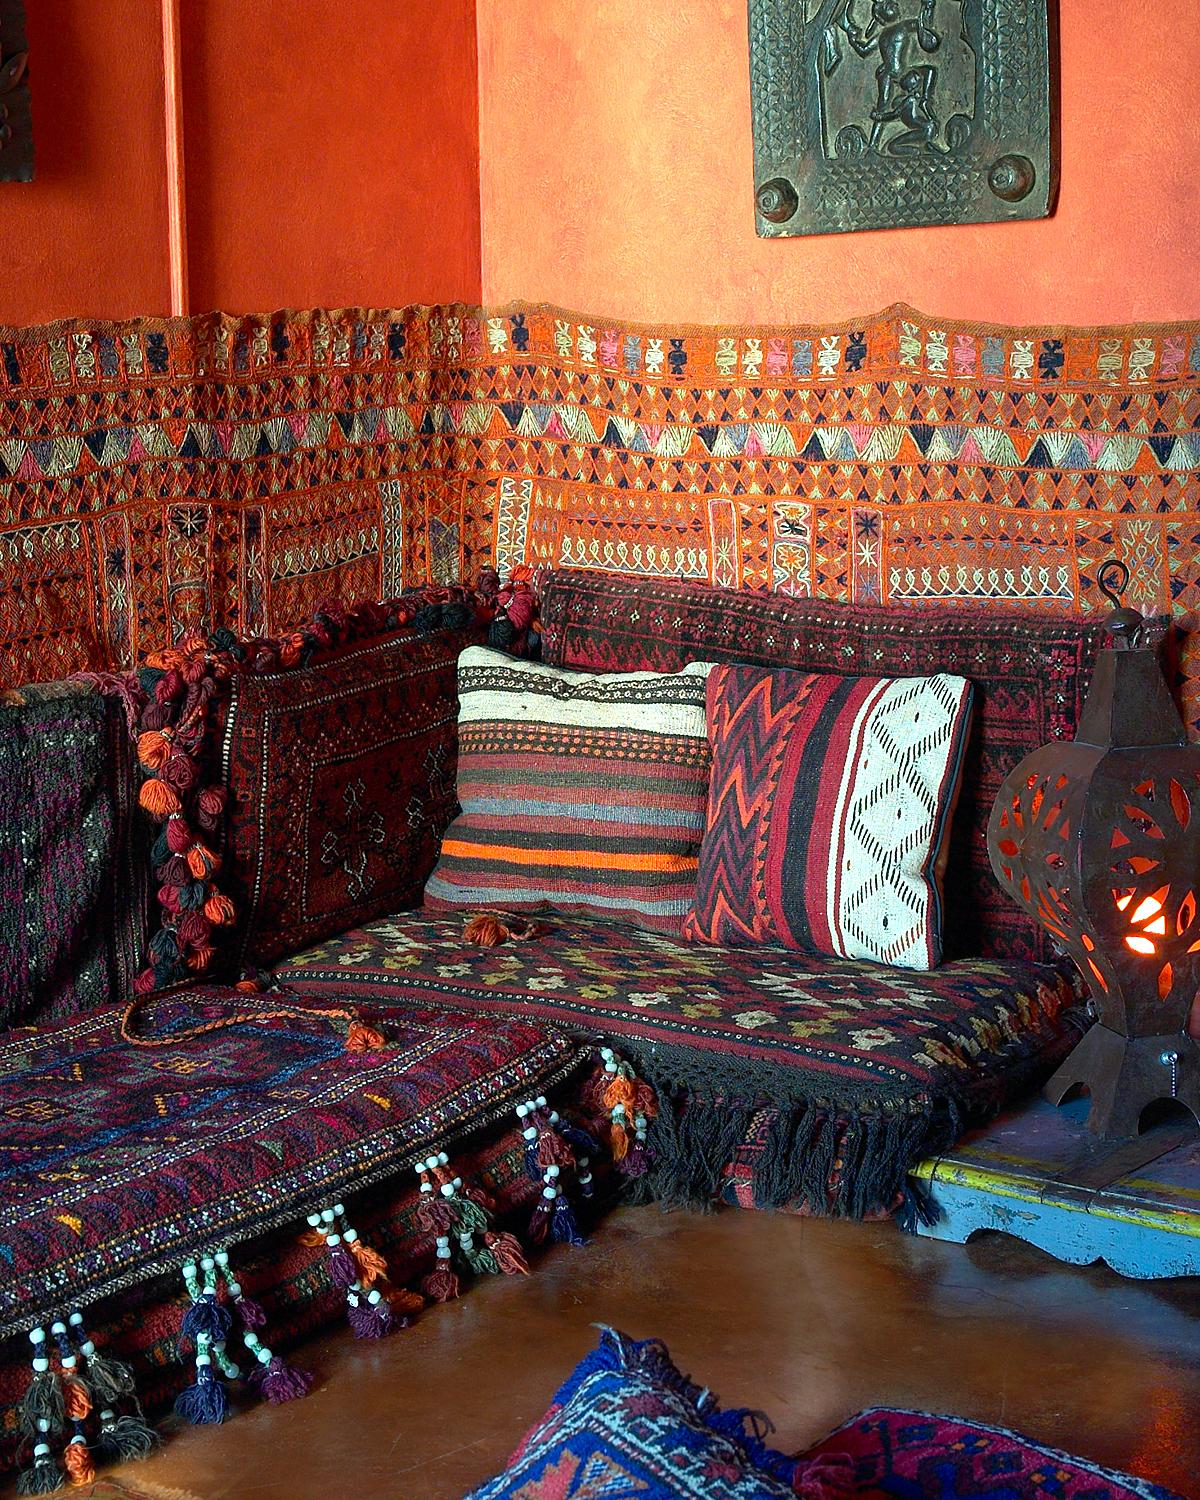 Bohemian love for Moroccan homes. I have Moroccan... - Karboojeh Jewelry & Crafts